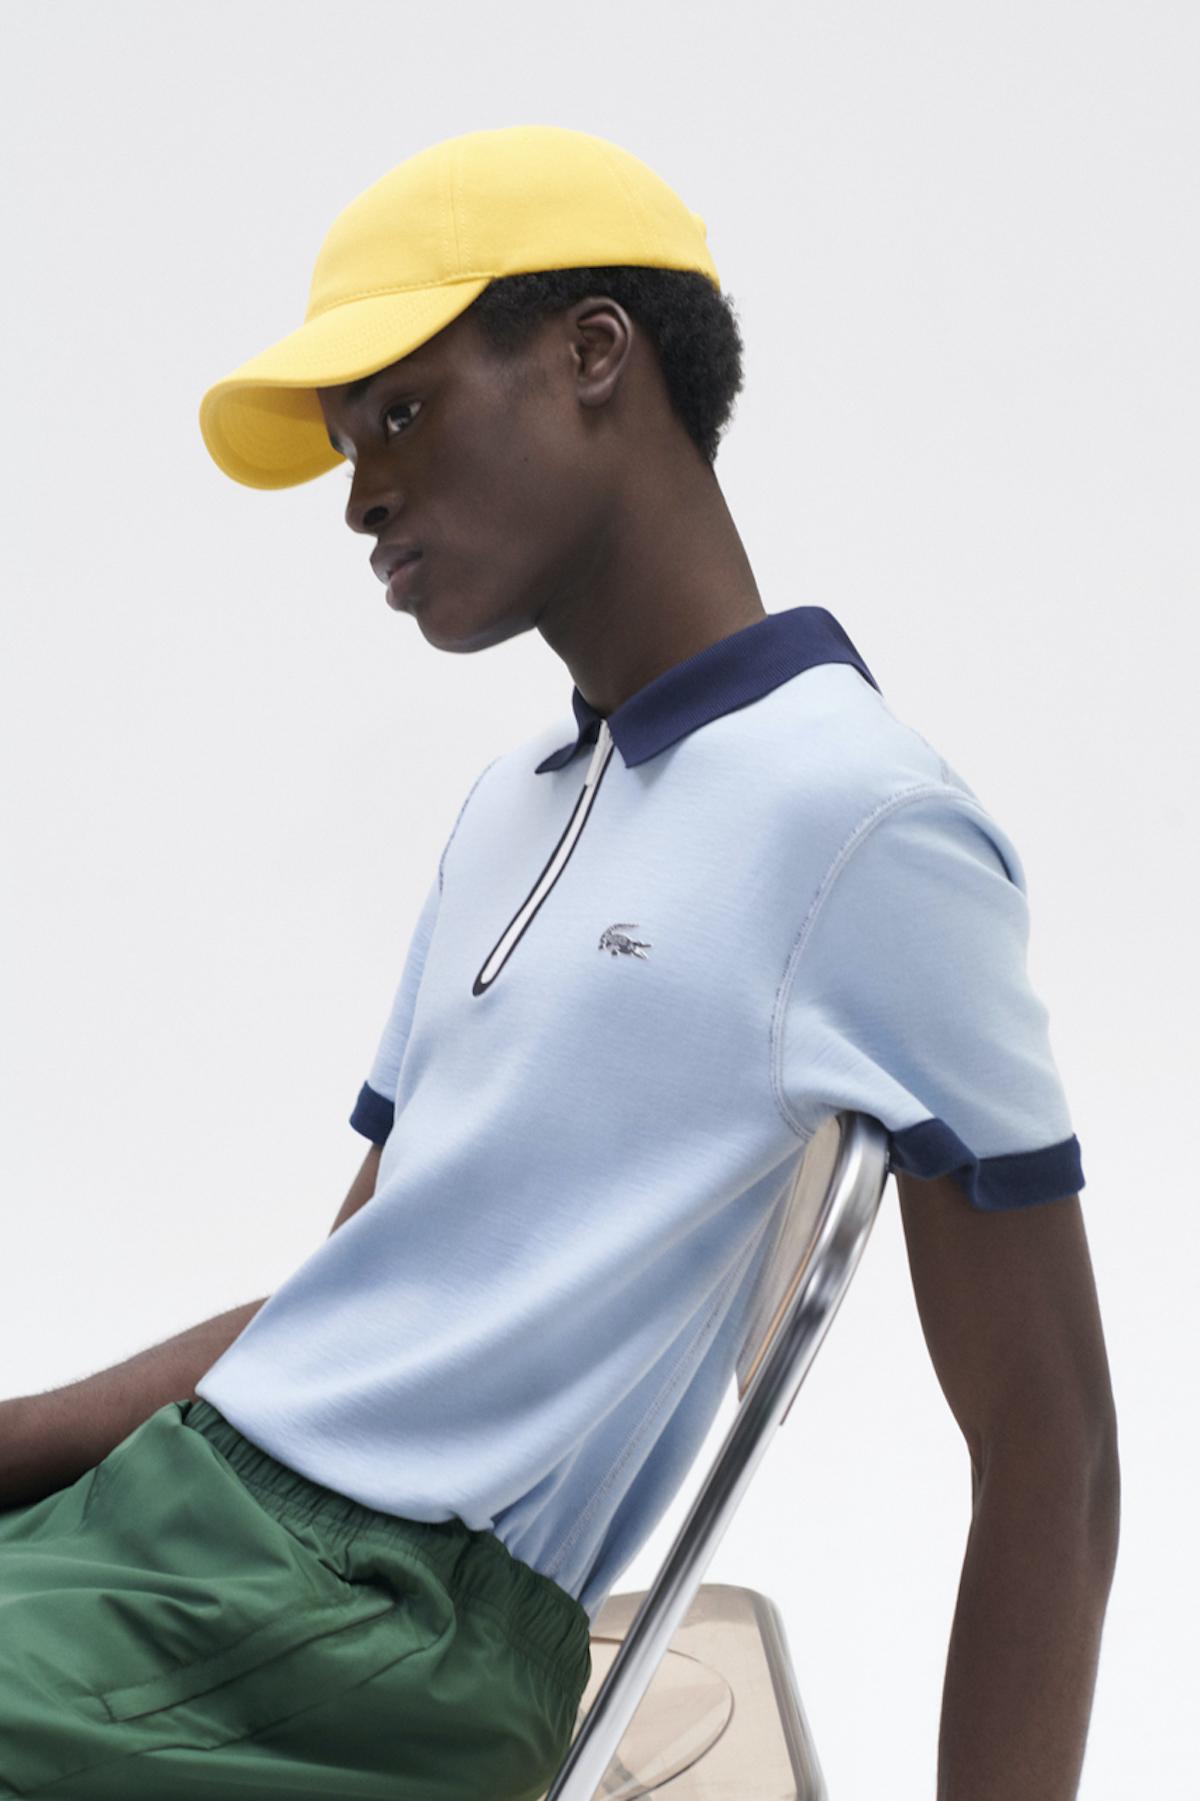 Lacoste Fall 2020 Fashion Collection Photos